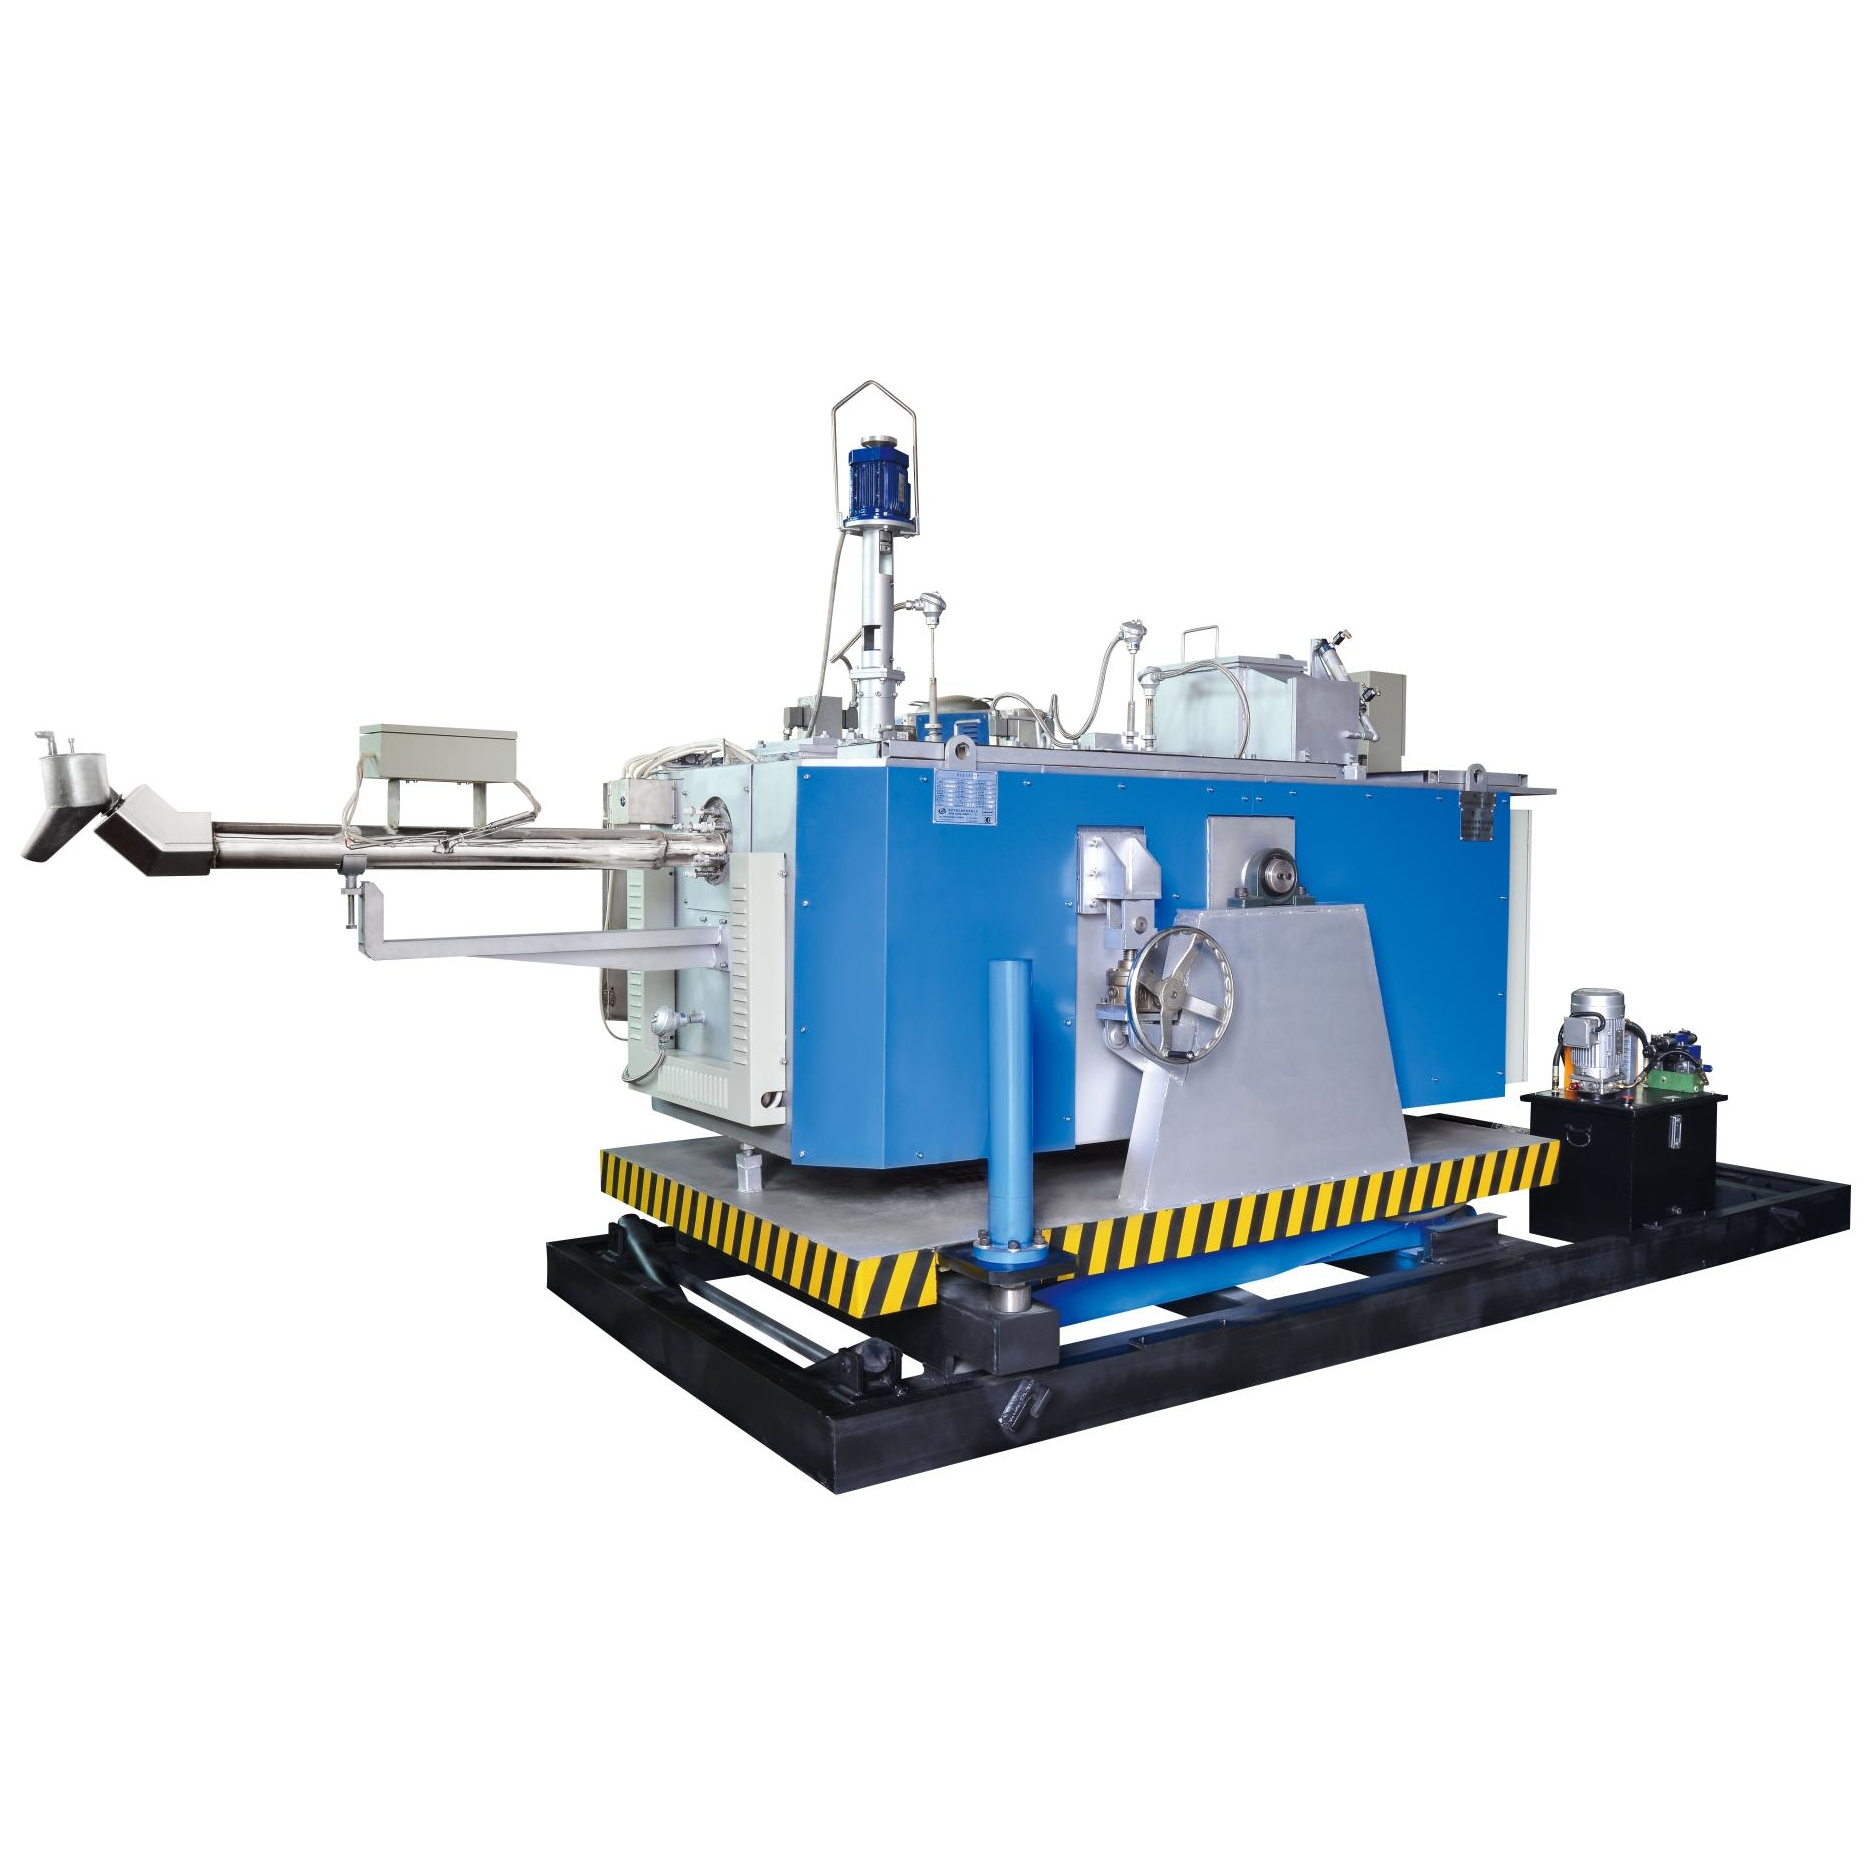 Electrical Magnesium Alloy Dosing Furnace 400kg/h